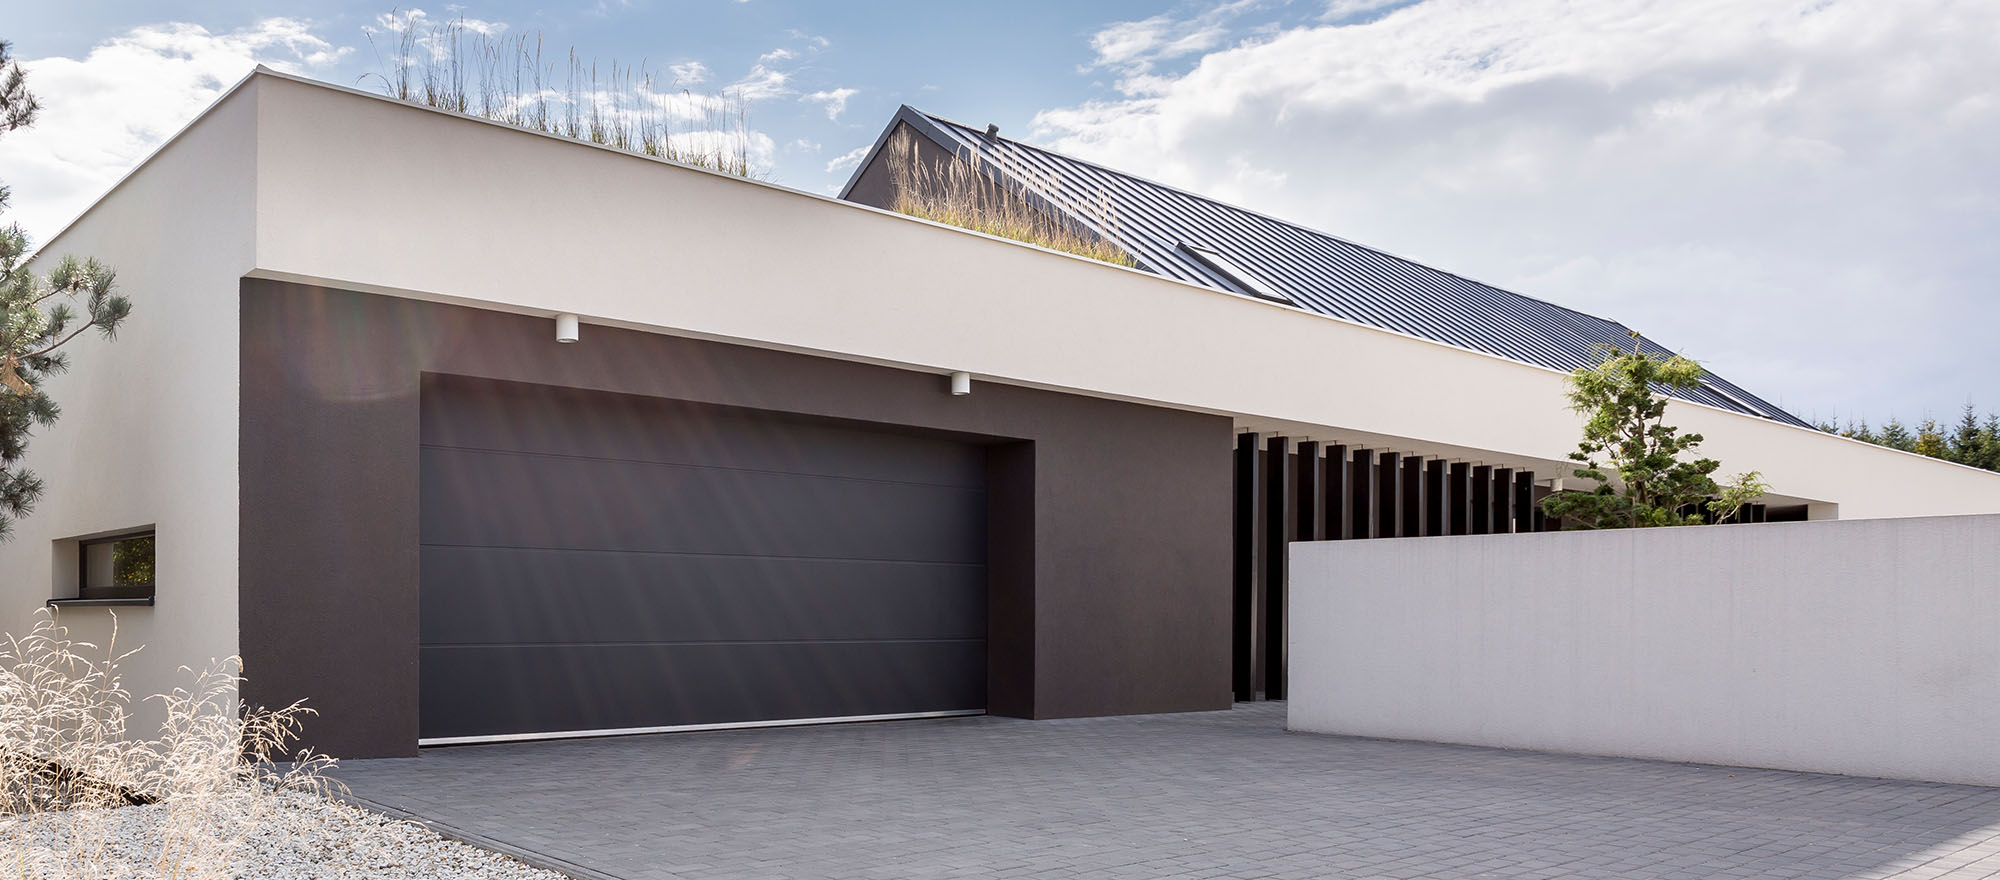 Modern luxurious house with huge garage and tree next to building